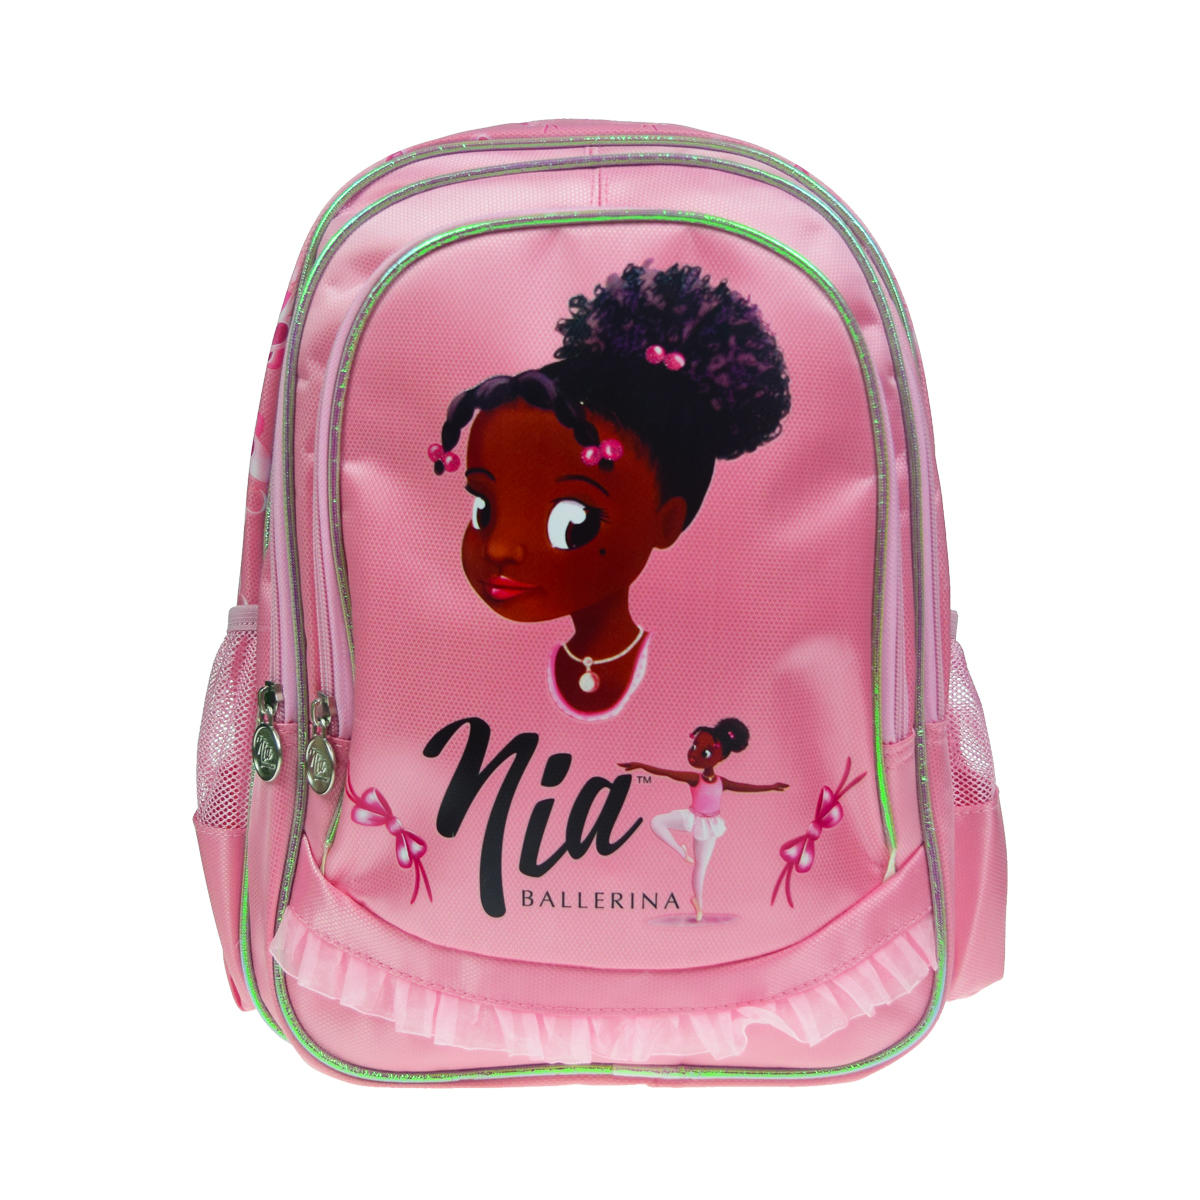 Pink rucksack with black ballerina